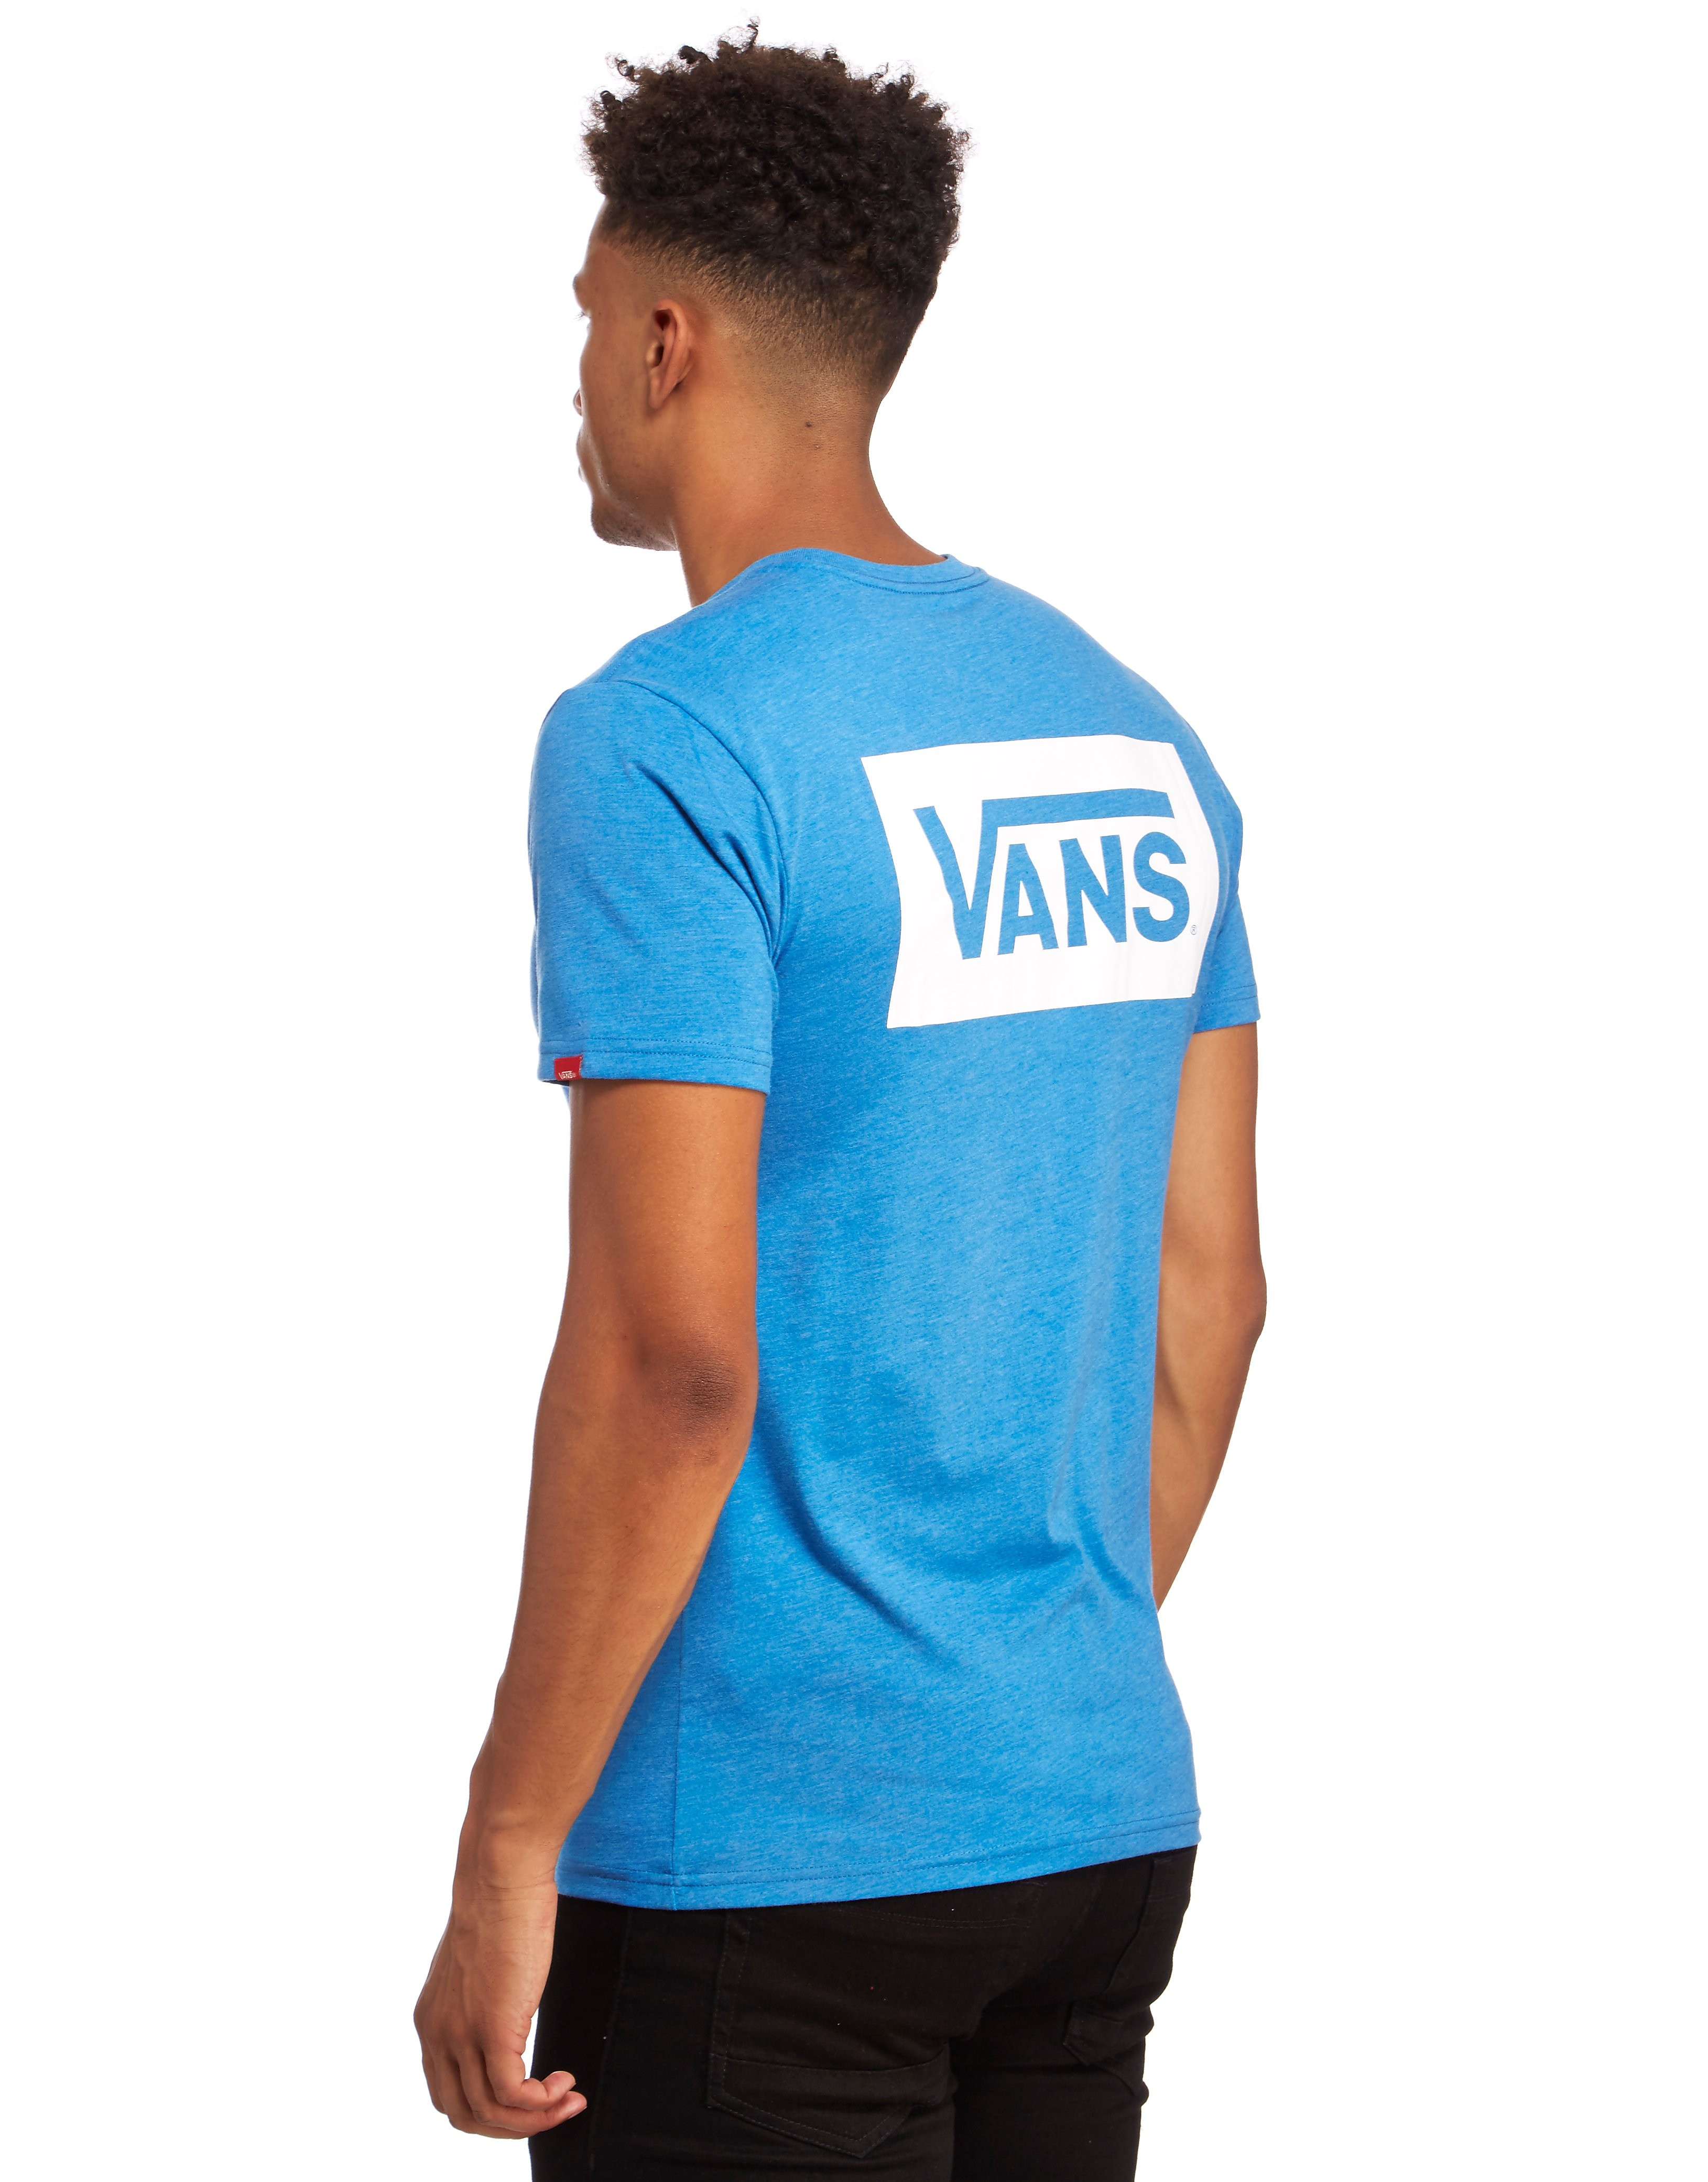 Vans Small Box T-Shirt